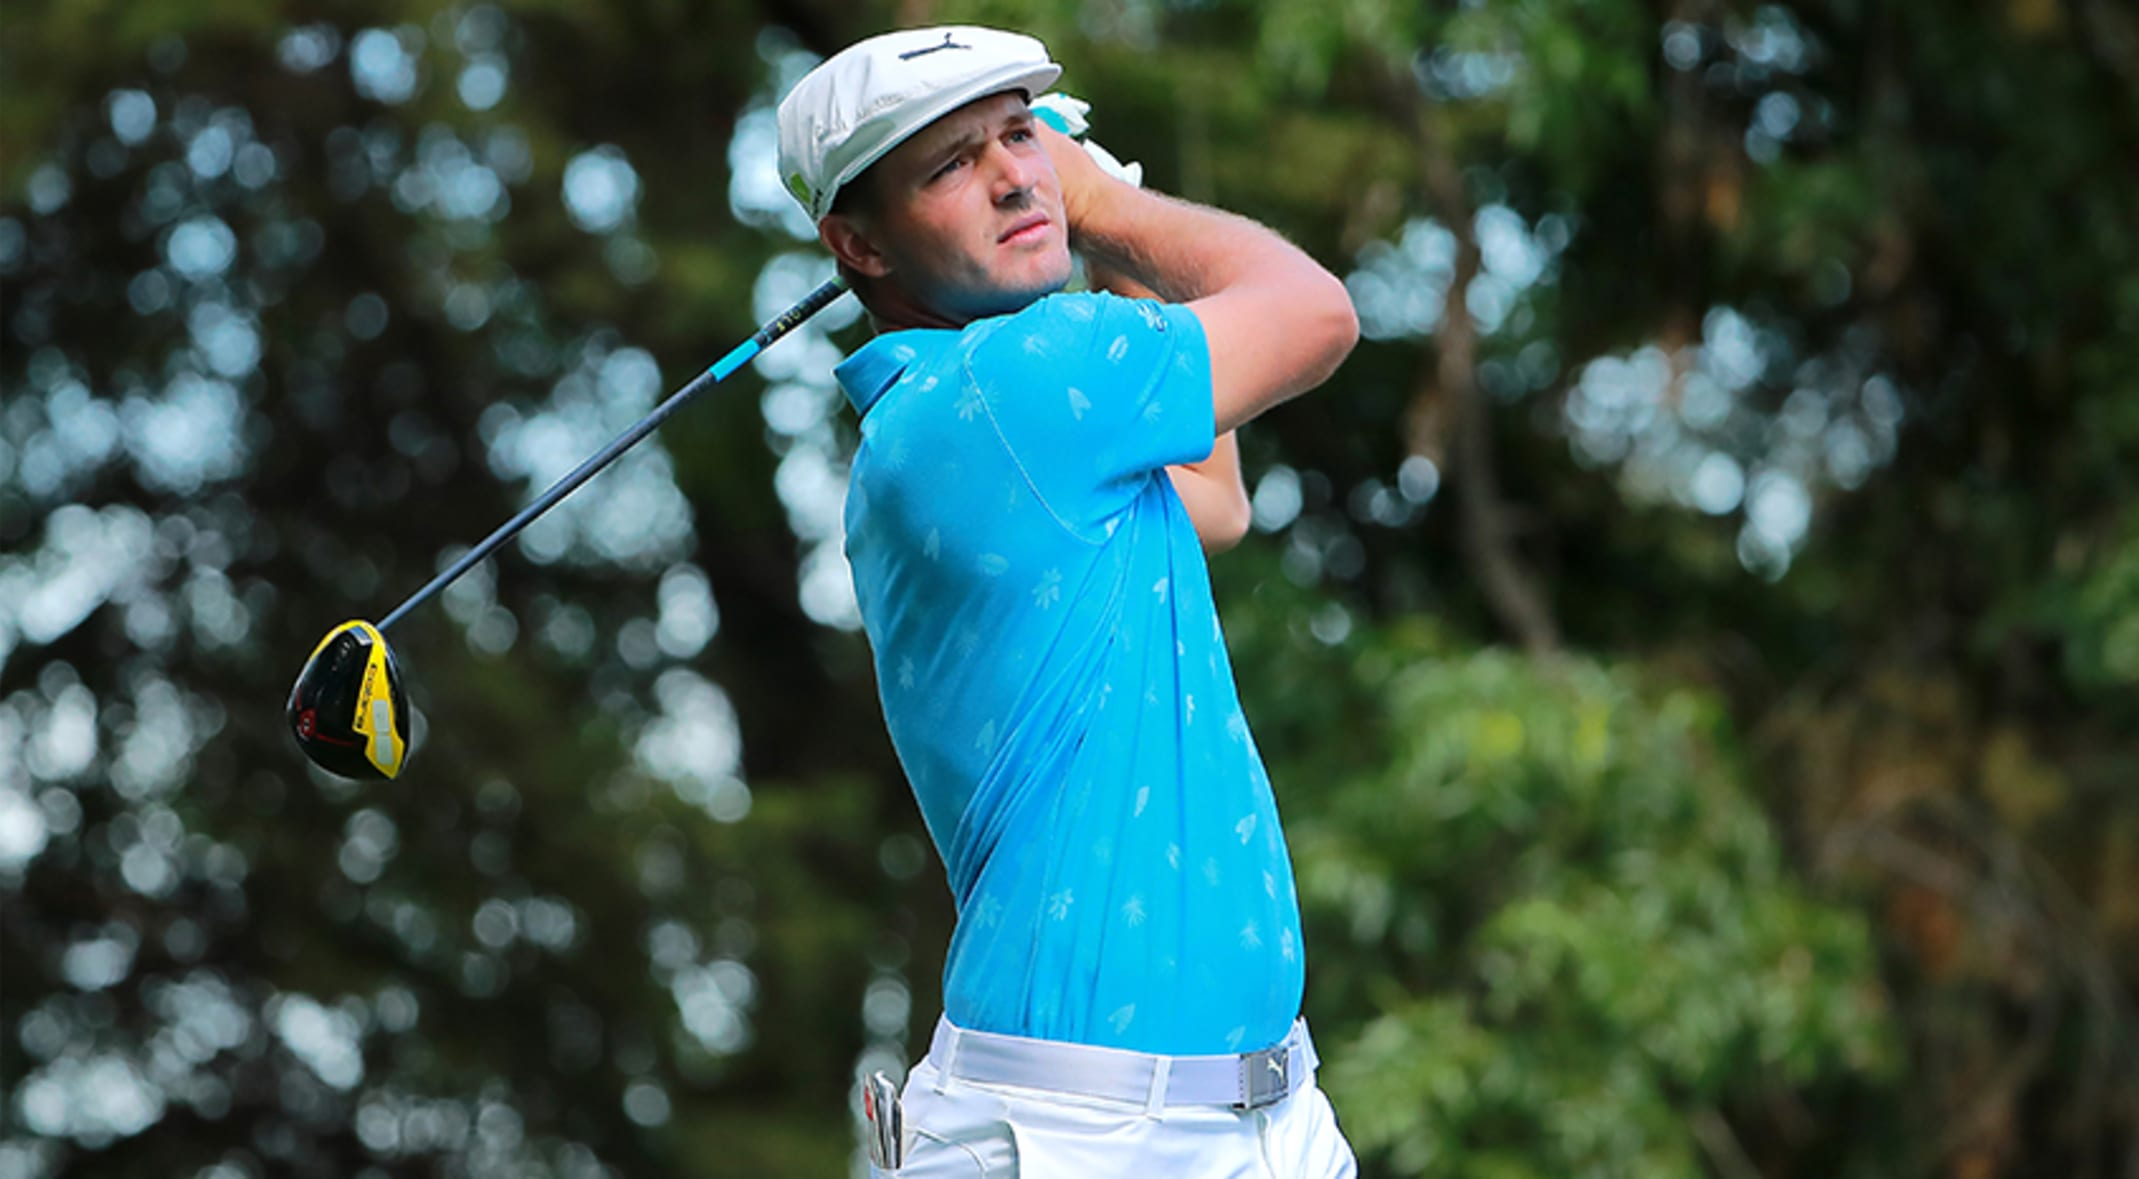 Bryson DeChambeau recorded five wins in the last nine months and finished second at the 2018